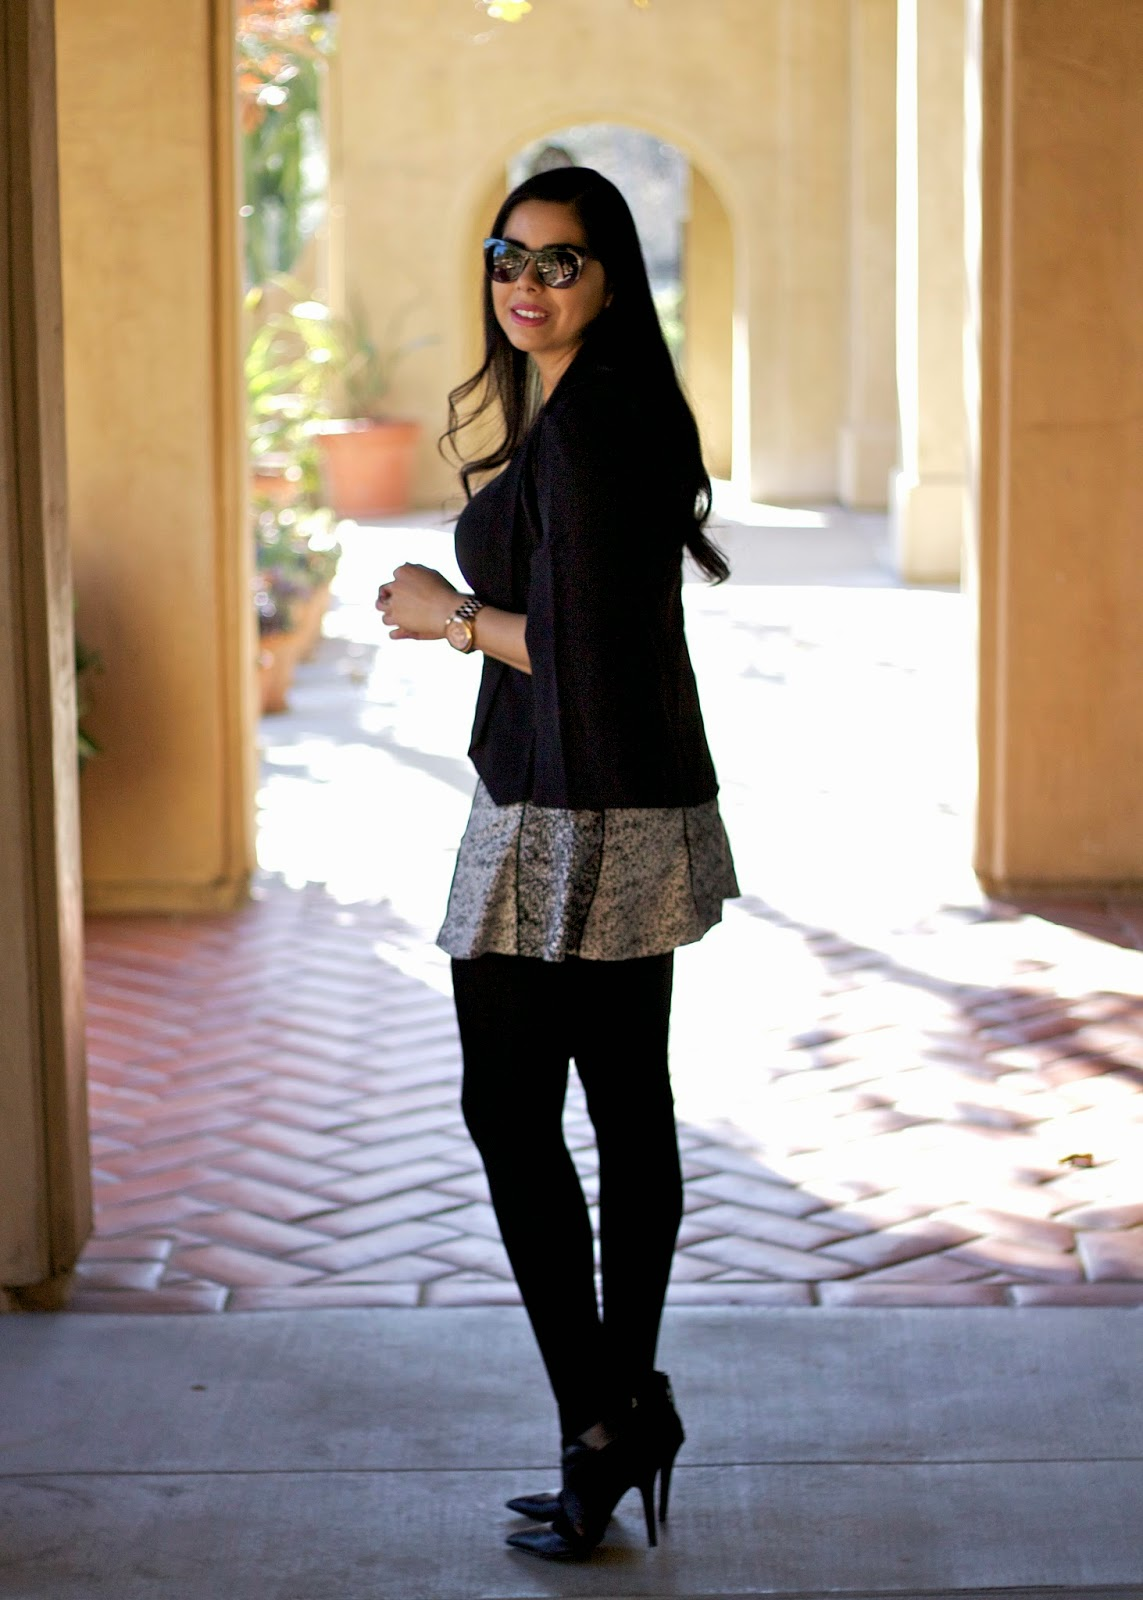 How to wear a chic outfit, chic San Diego, San Diego chic blogger, best of San Diego bloggers